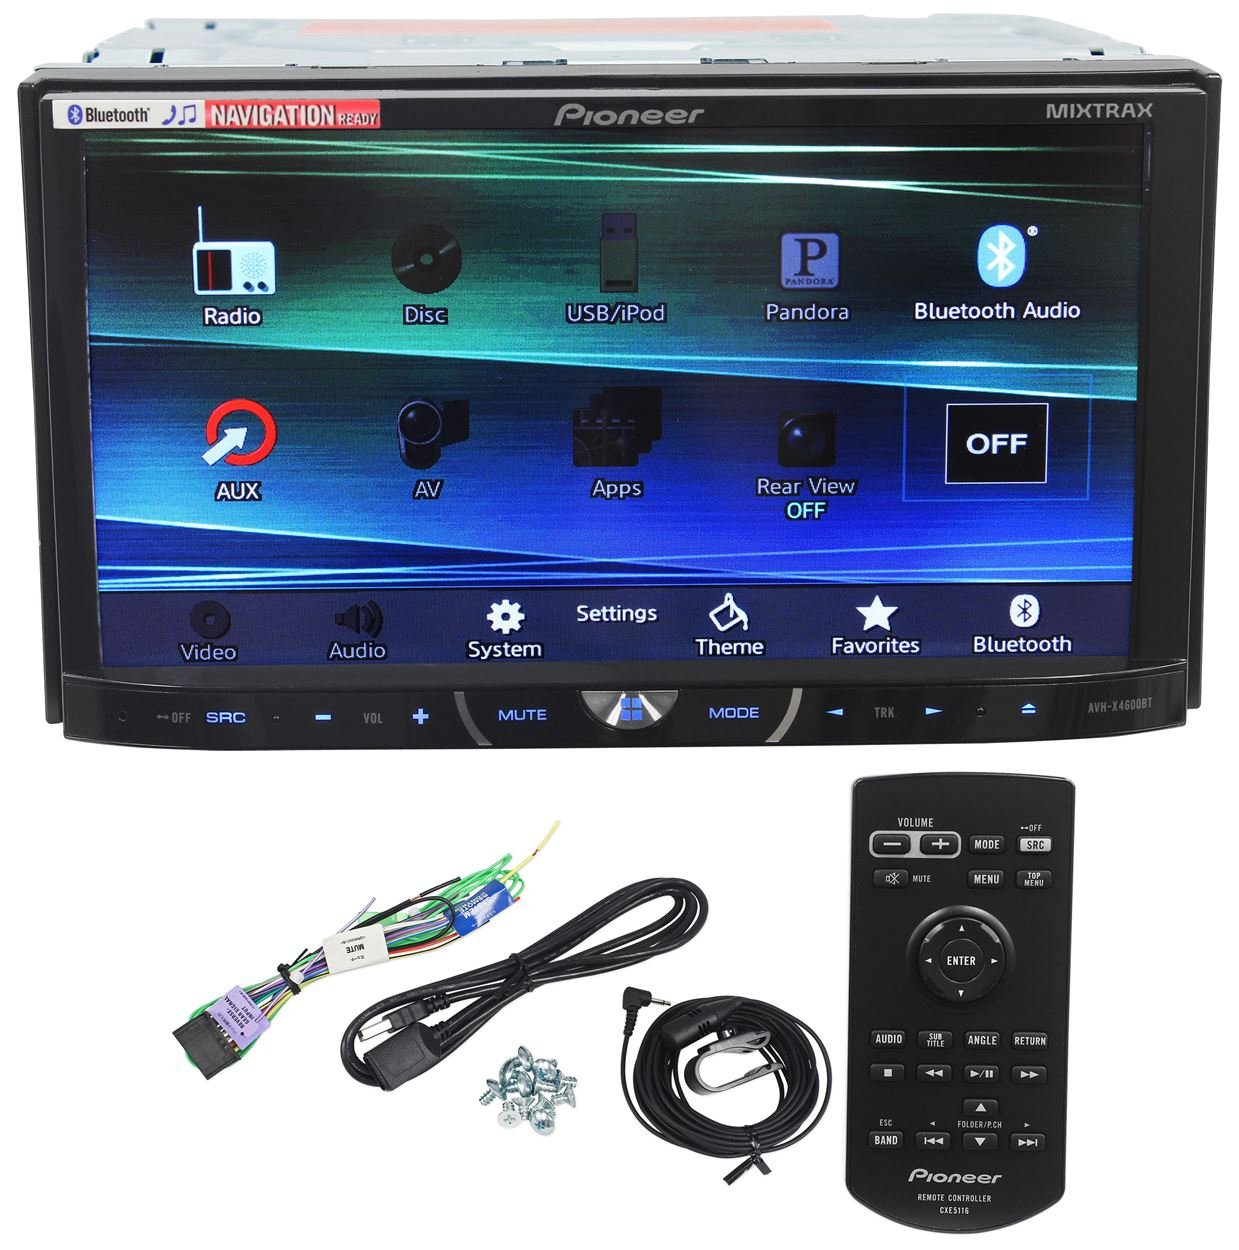 Amazon com pioneer avh x4600bt 7 double din car stereo receiver bluetooth siri eyes free app radio mode pandora iphone ipod android compatible